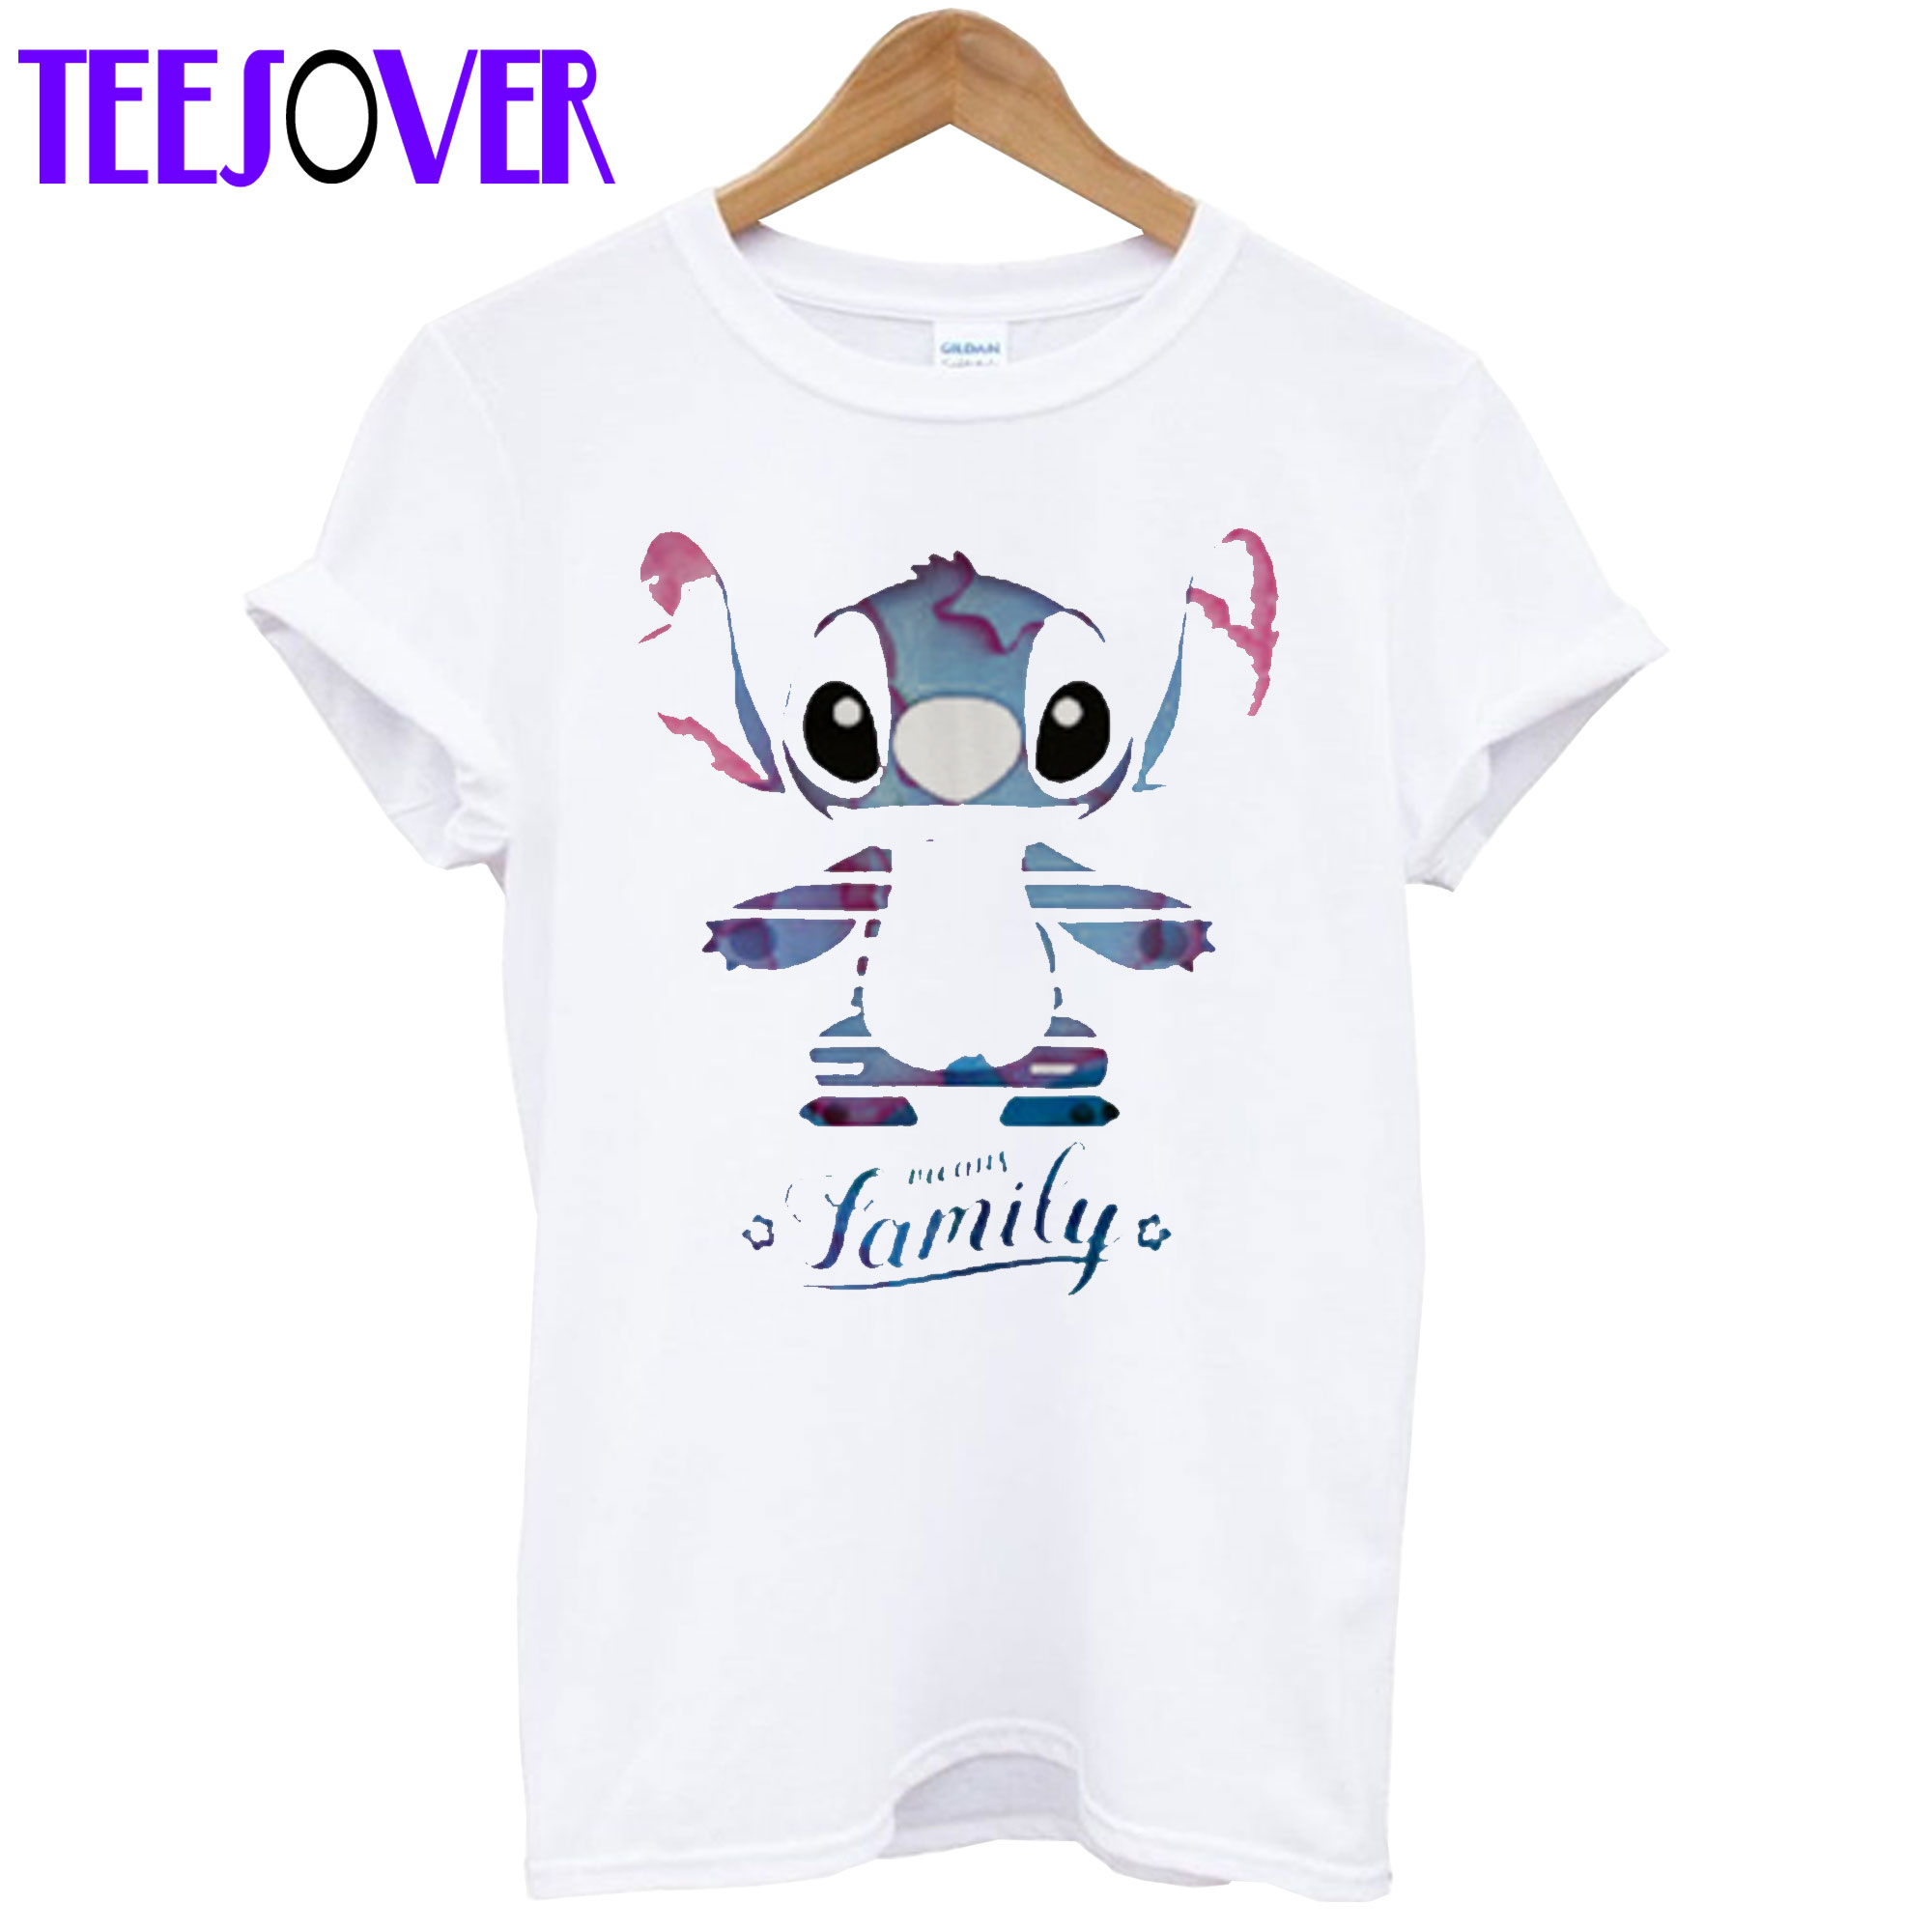 Stitch Means Family T shirt